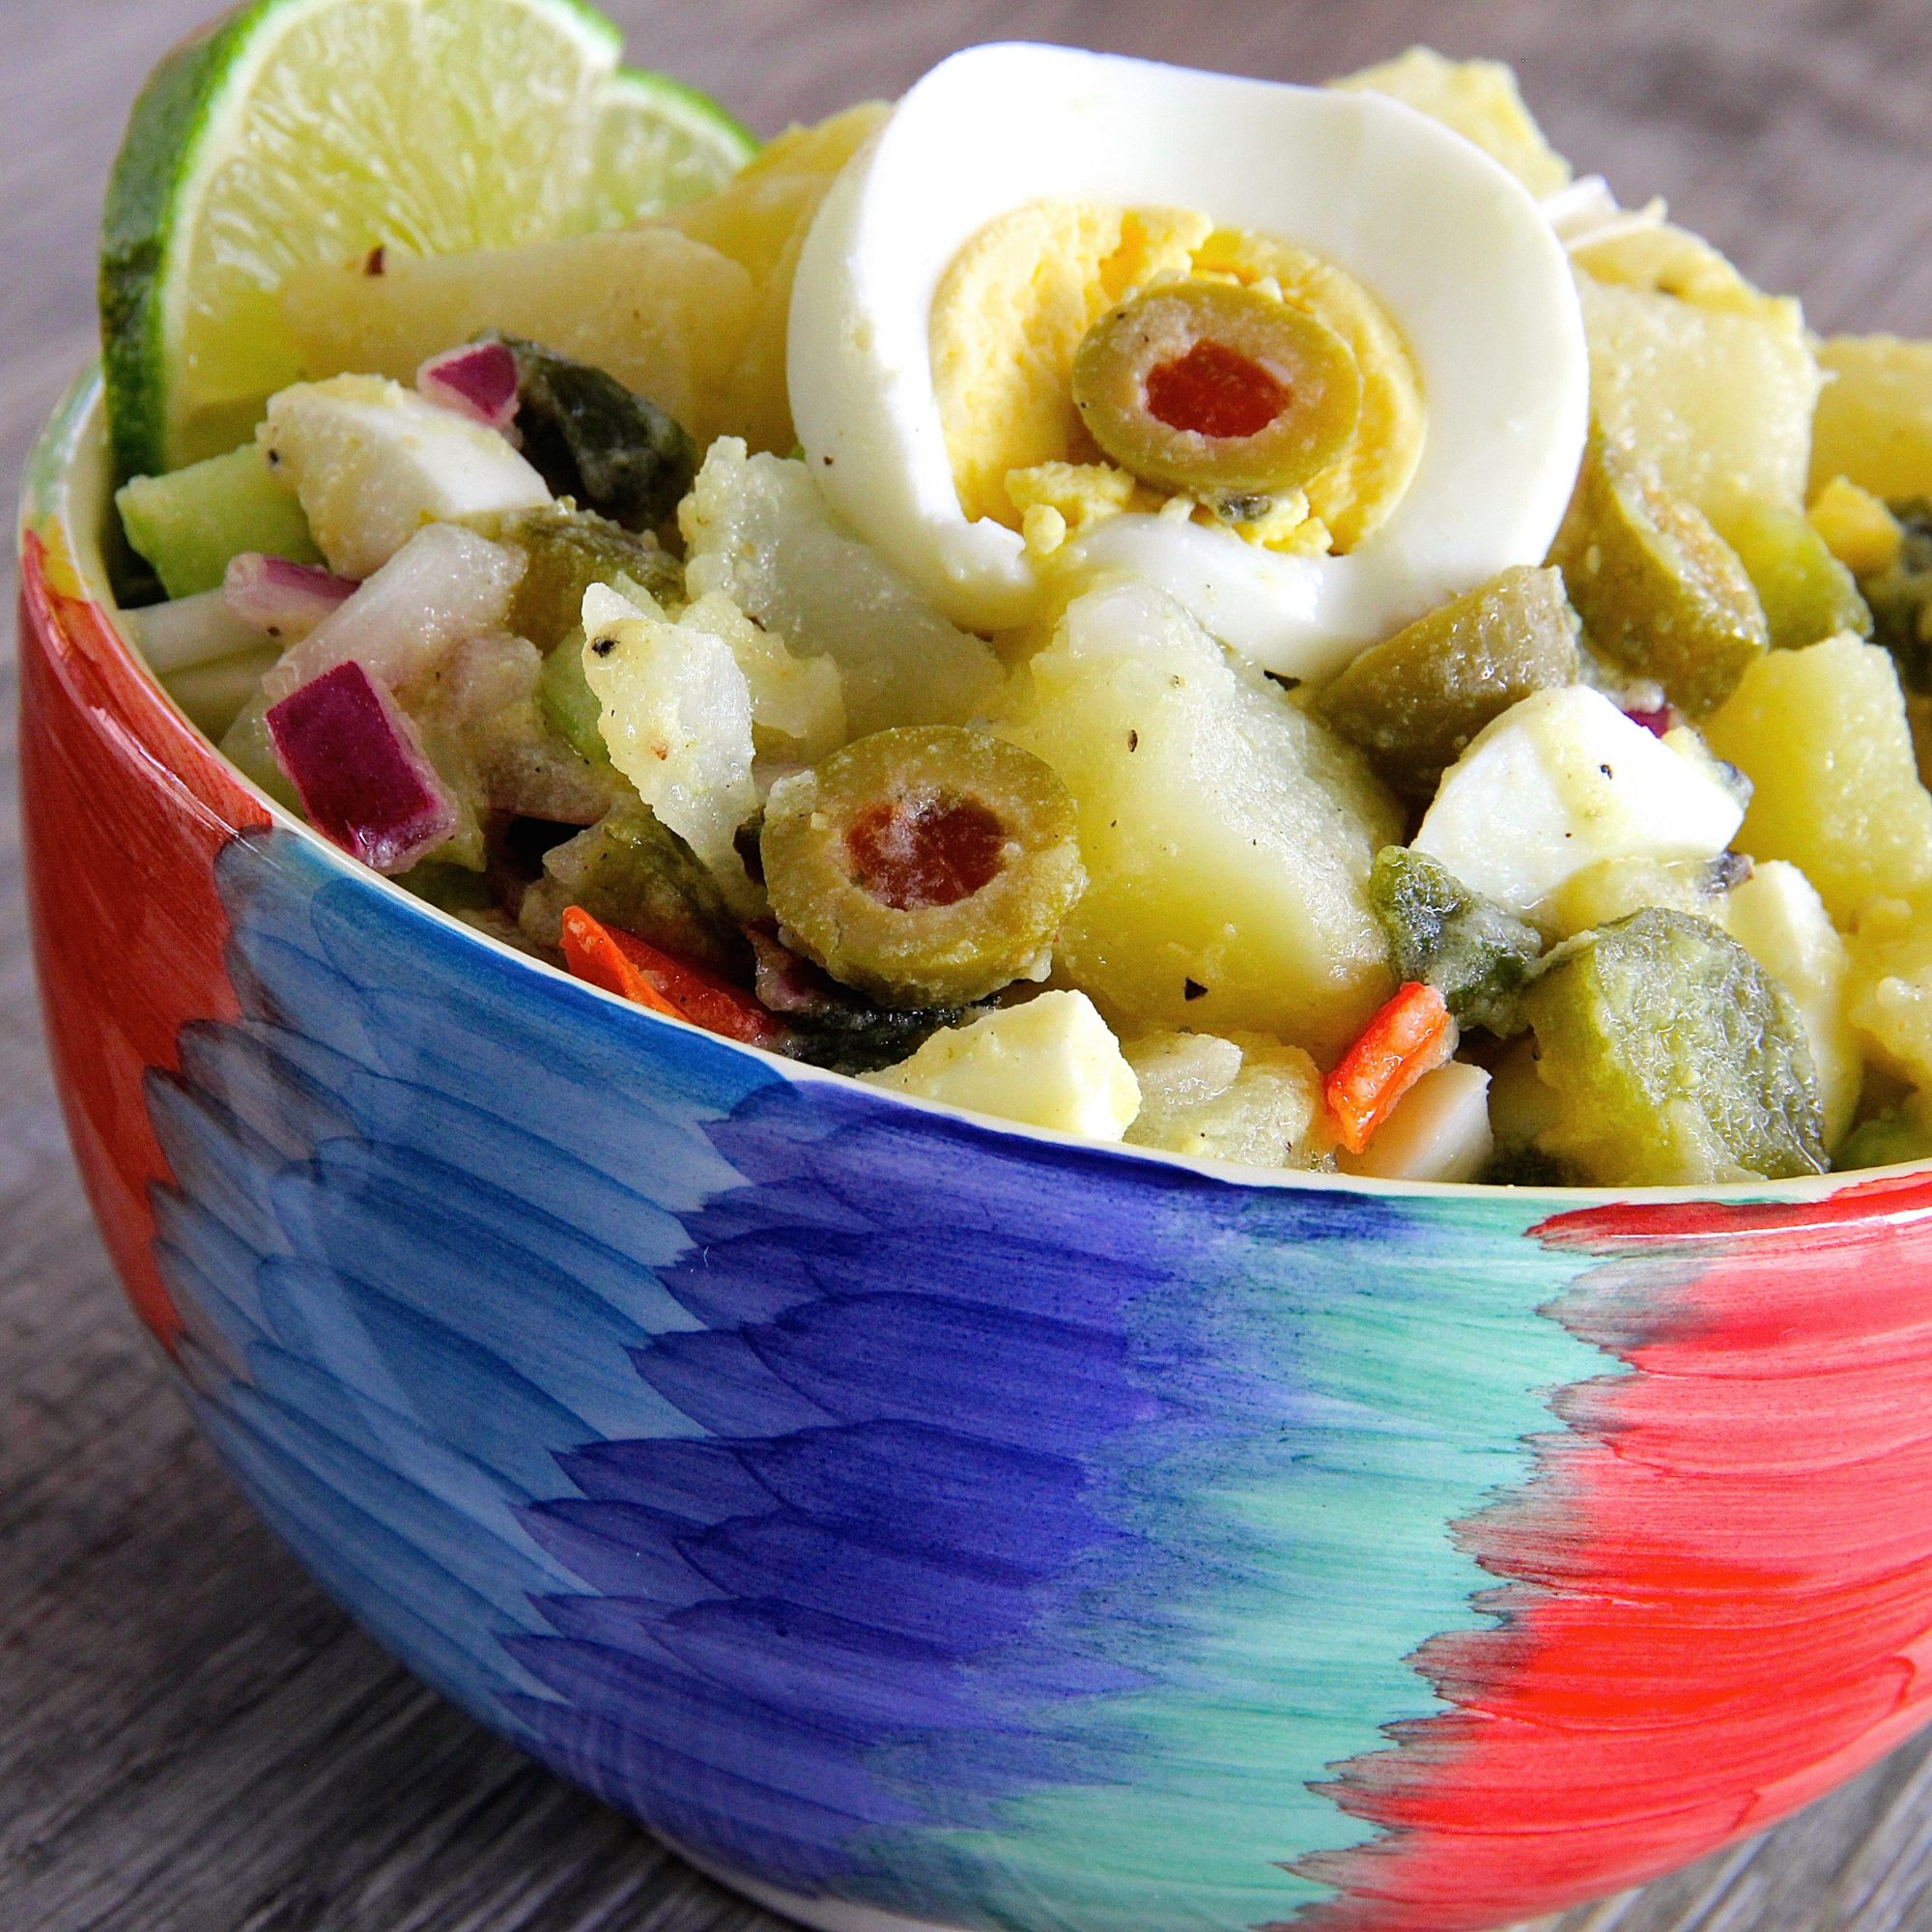 Yucatan Potato Salad with lime garnish in a colorful bowl